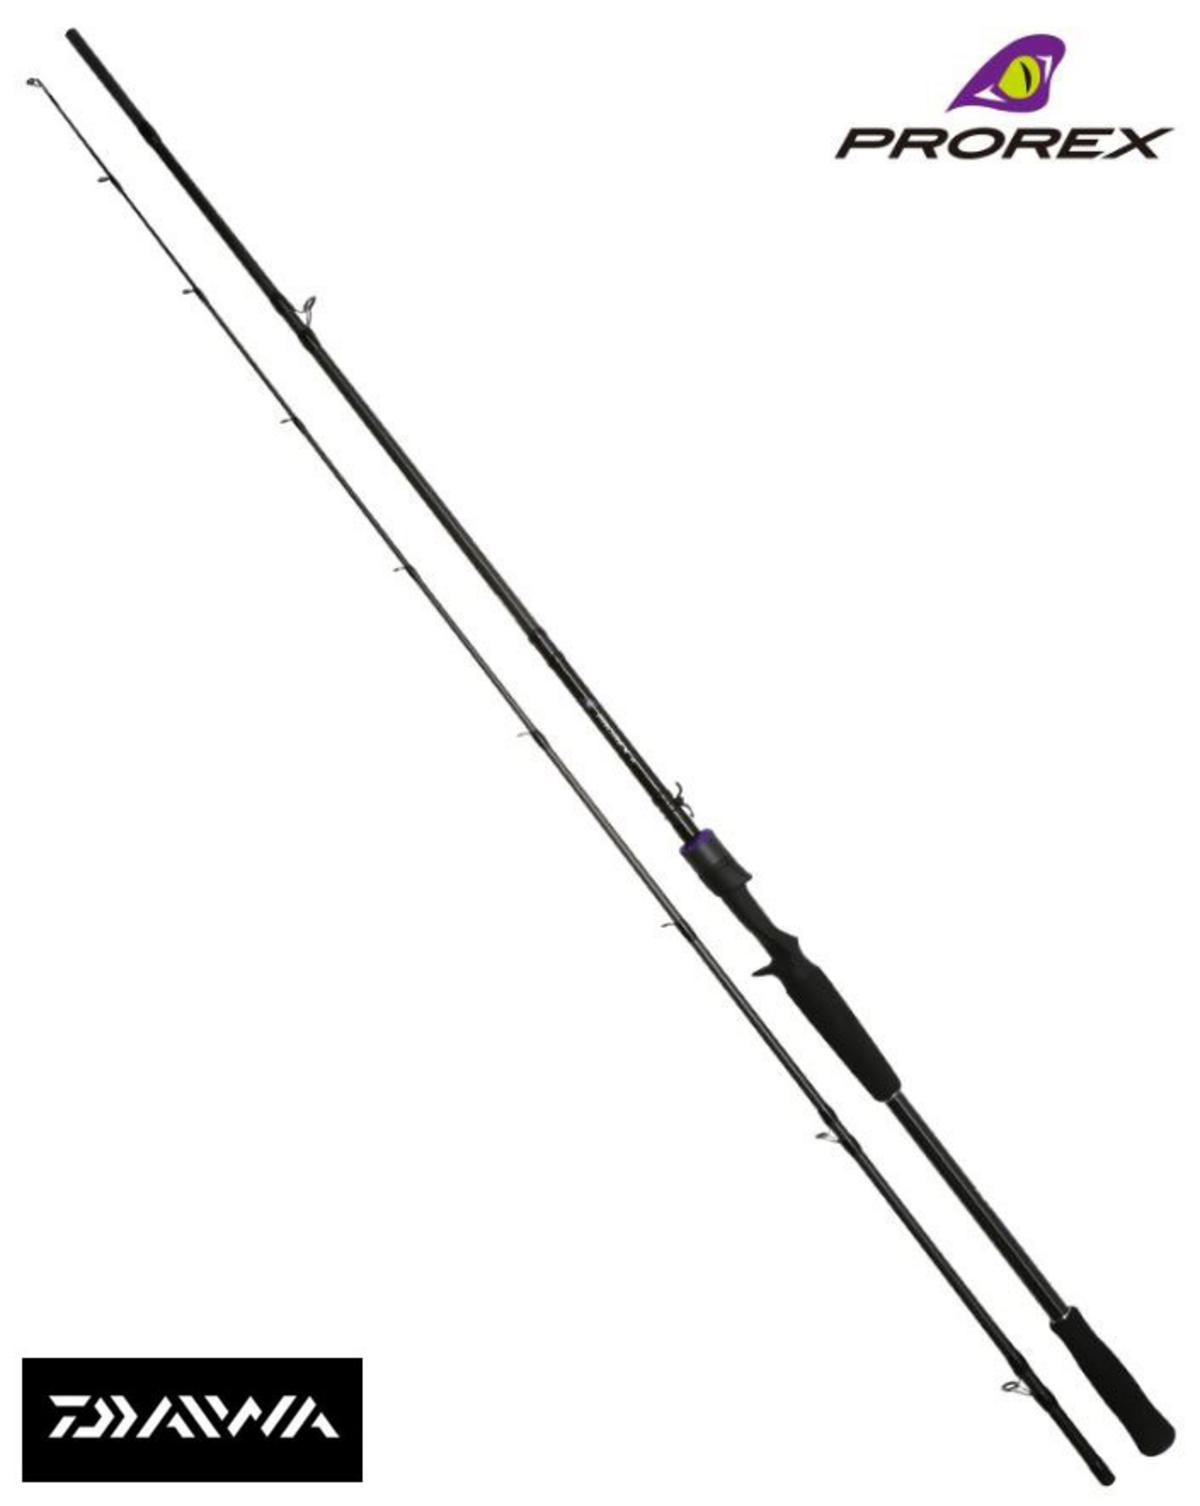 "Ex Display Daiwa Prorex XR Baitcasting Spinning Rods 6'9"" 150g cw PXX692XXHFB-AS"